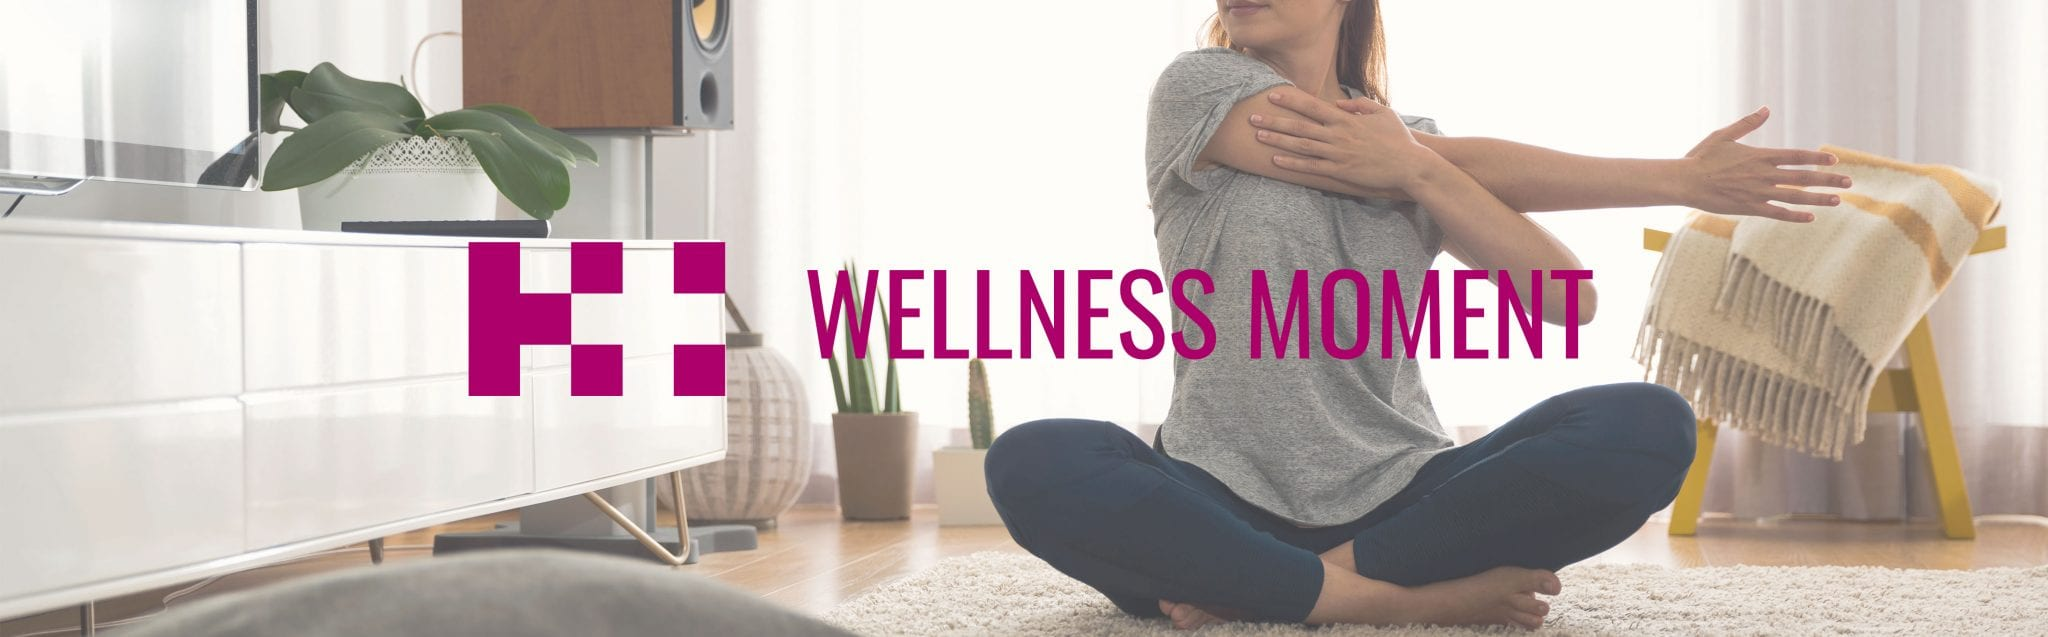 Virtual Resources Wellness Moment COVID-19